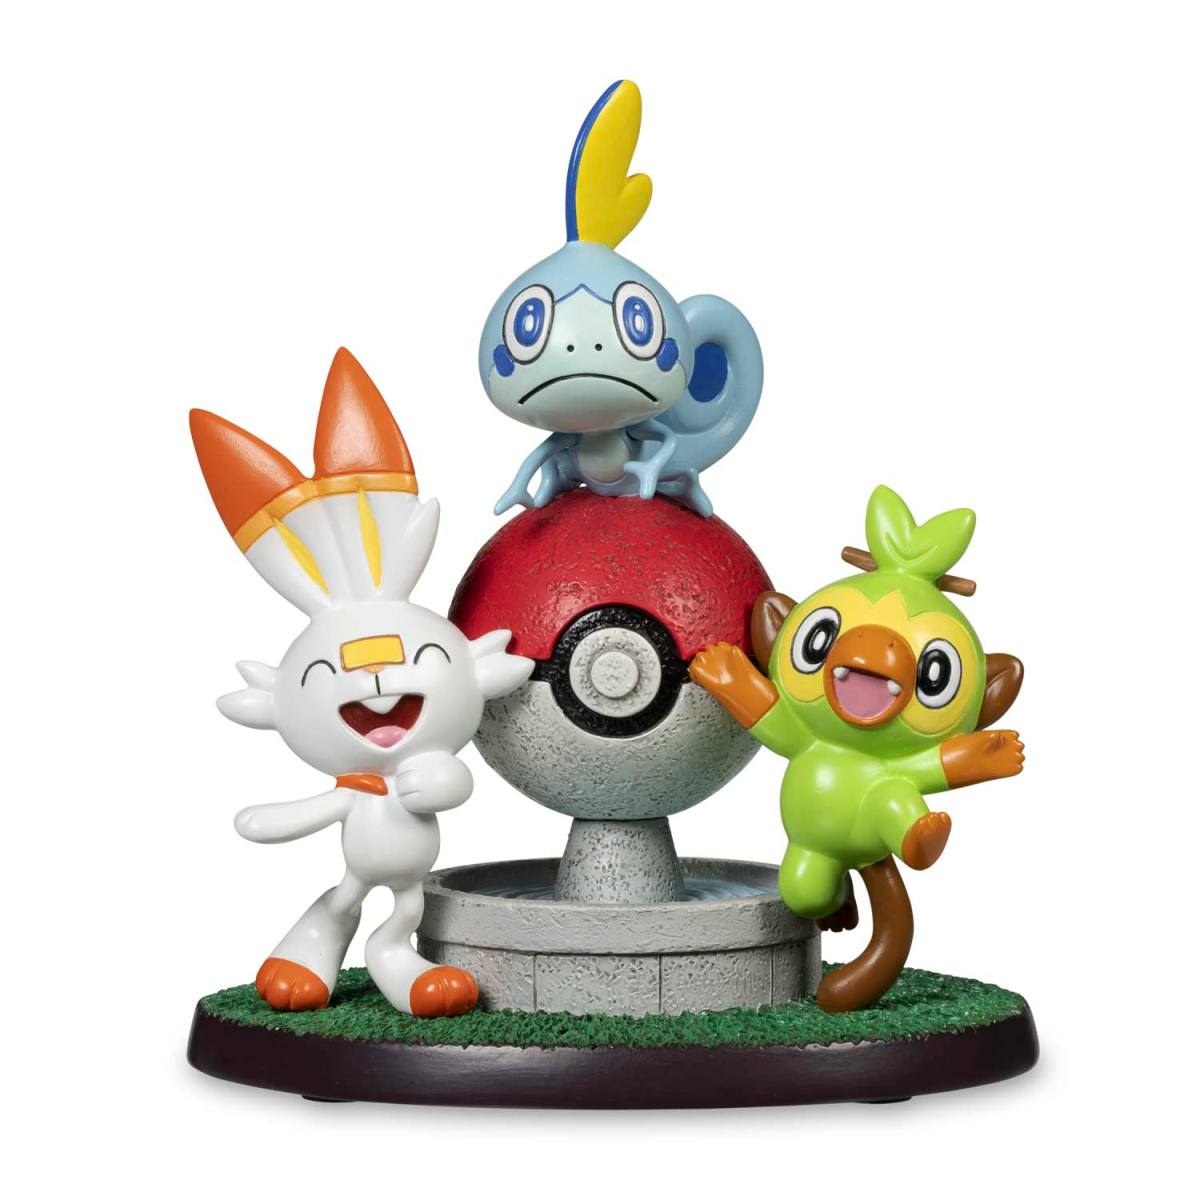 New The Galar Journey Begins Figure Available Now At The Pokemon Center Pokemon Blog Grookey (サルノリ) is a starter pokémon, and was introduced in the eighth generation of pokémon, pokémon sword and shield (ポケットモンスターソード・シールド). new the galar journey begins figure